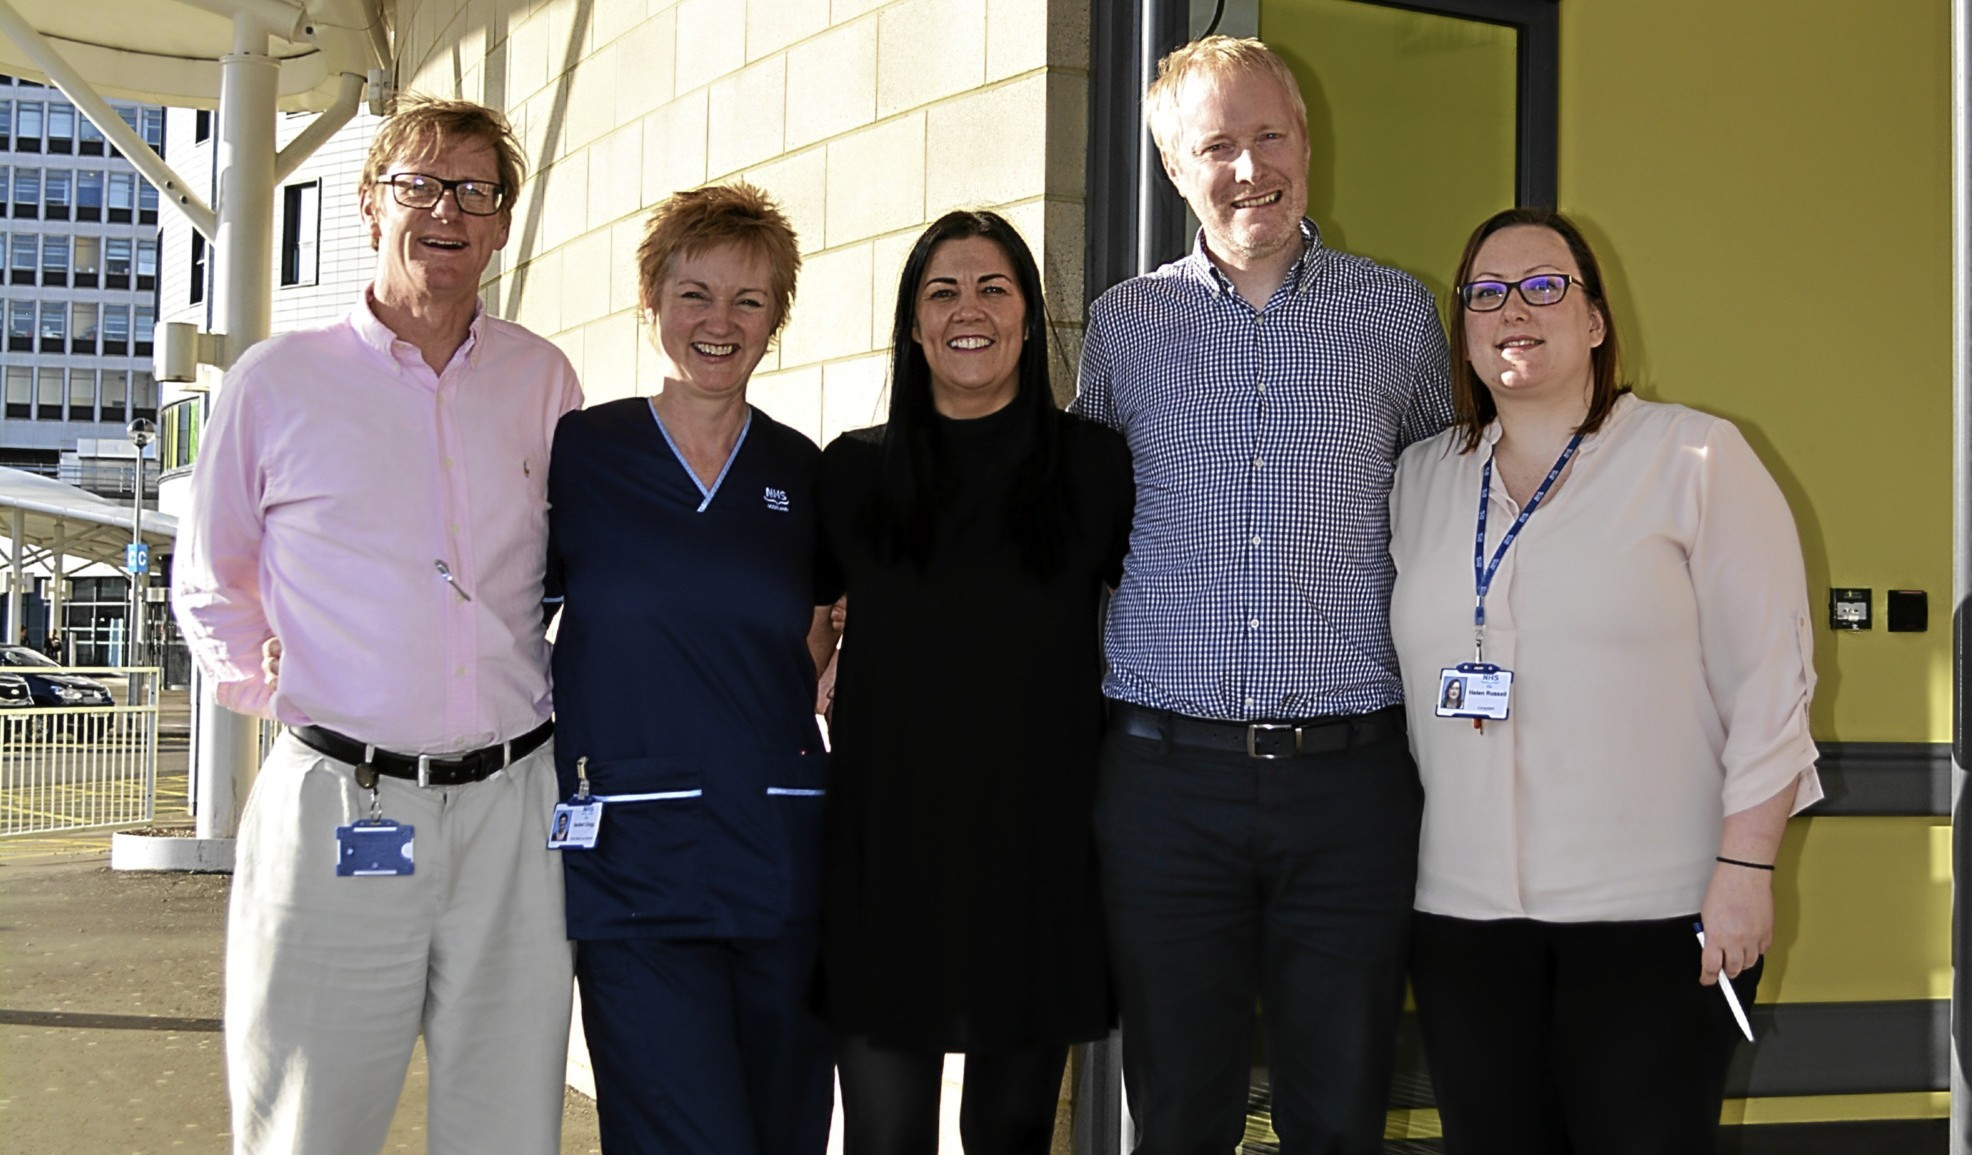 Consultant in obstetrics and gynaecology Graham Tydeman, fetal medicine midwife specialist Isobel Clegg, Alison Askew, Rob Askew, and consultant in obstetrics and gynaecology Helen Russell.